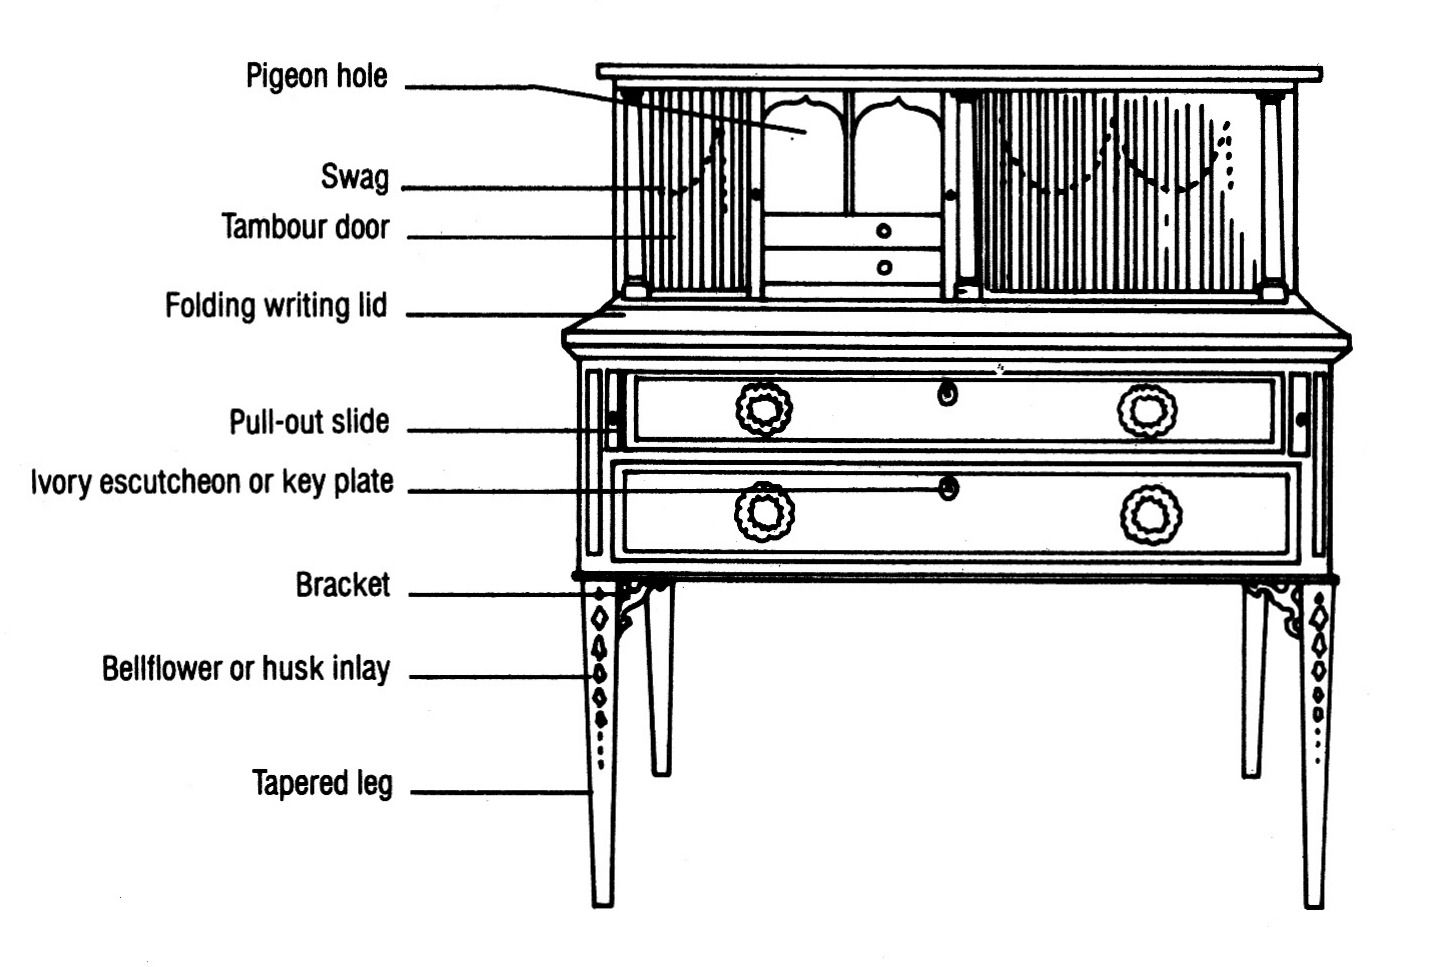 Diagram Of Federal Tambour Desk 1794 1804 Boston By John And Thomas